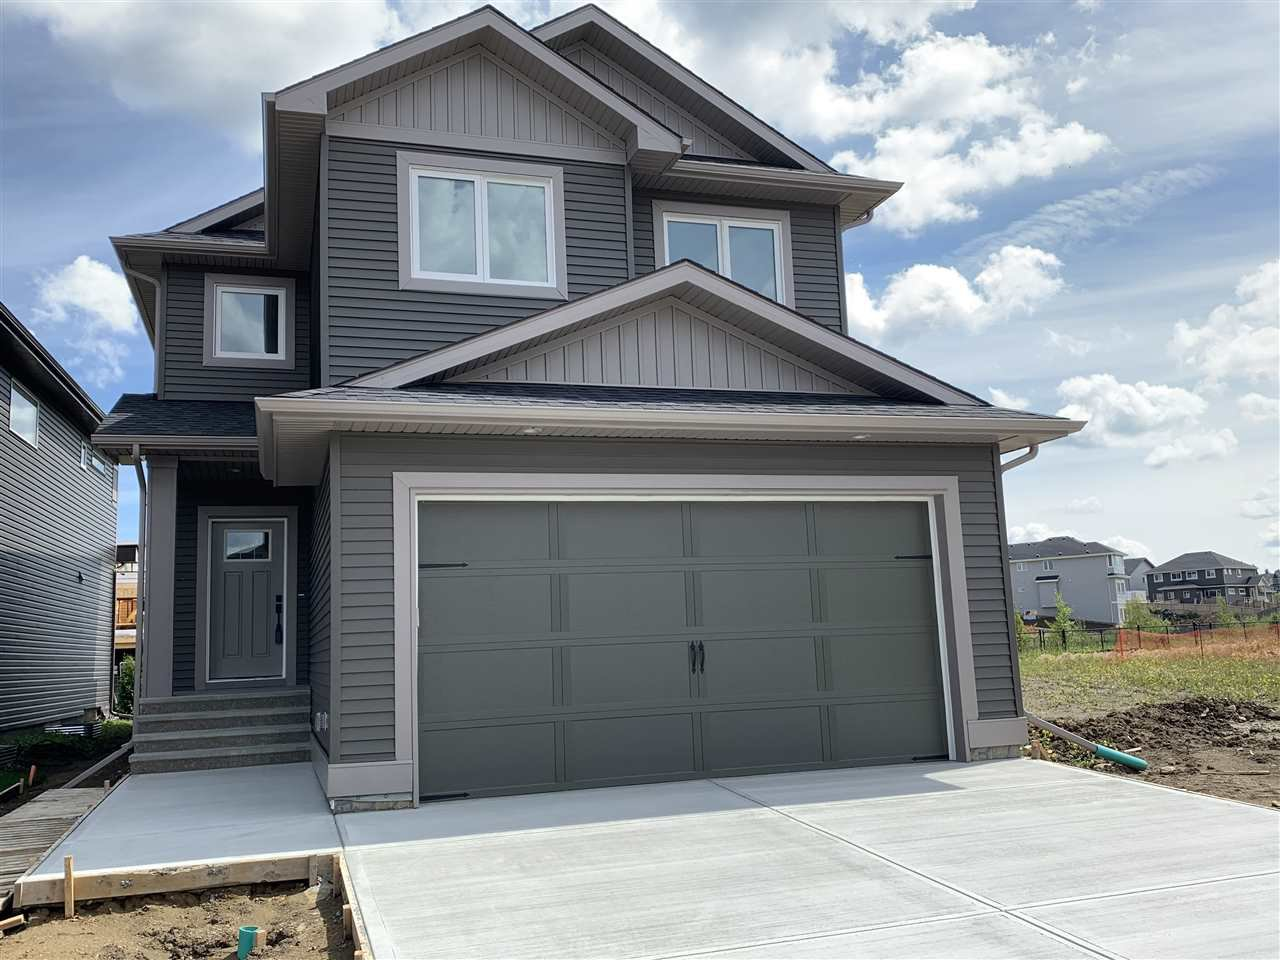 Main Photo: 37 Ainsley Way: Sherwood Park House for sale : MLS®# E4221156